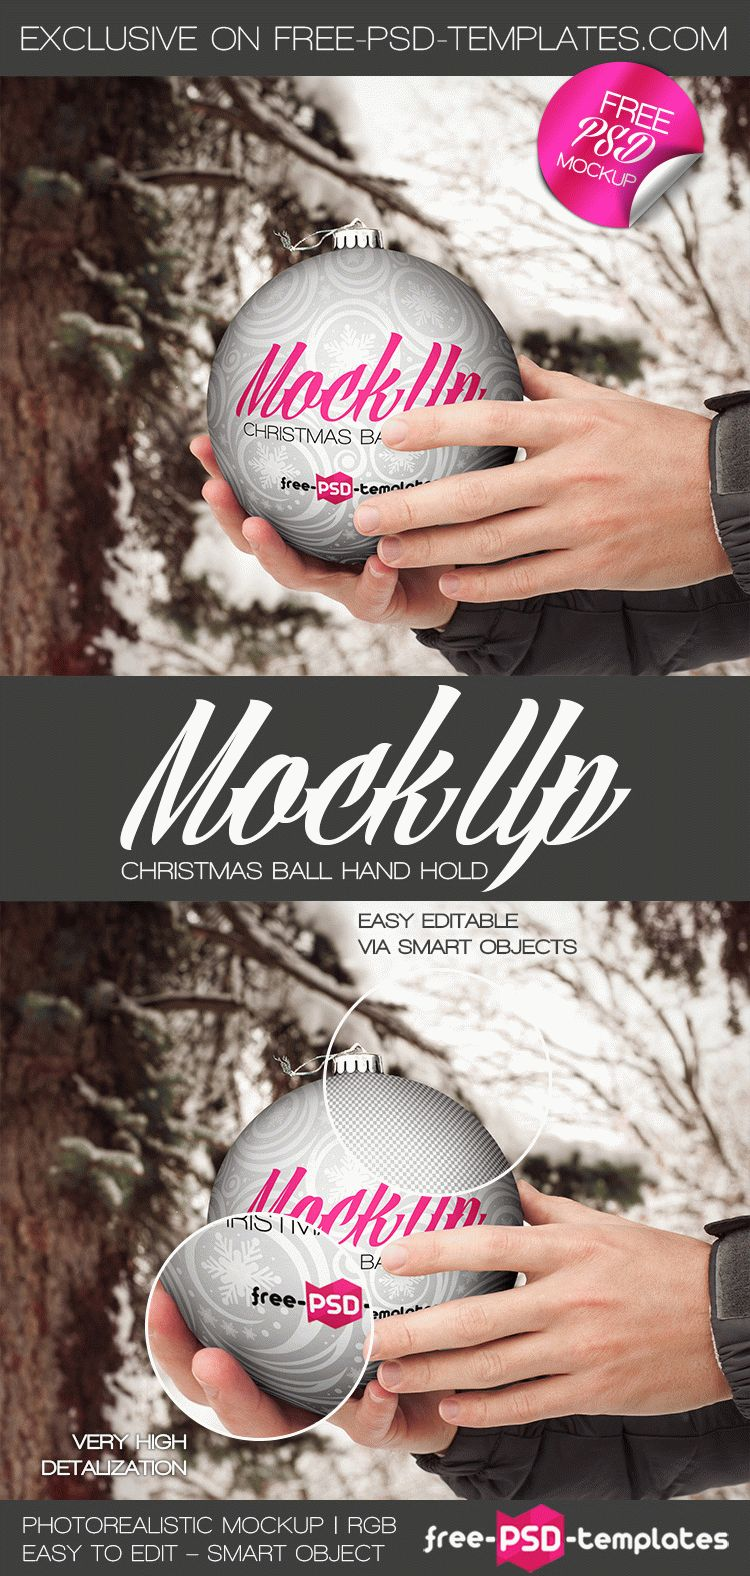 bigpreview_free-christmas-ball-hand-hold-mock-up-in-psd